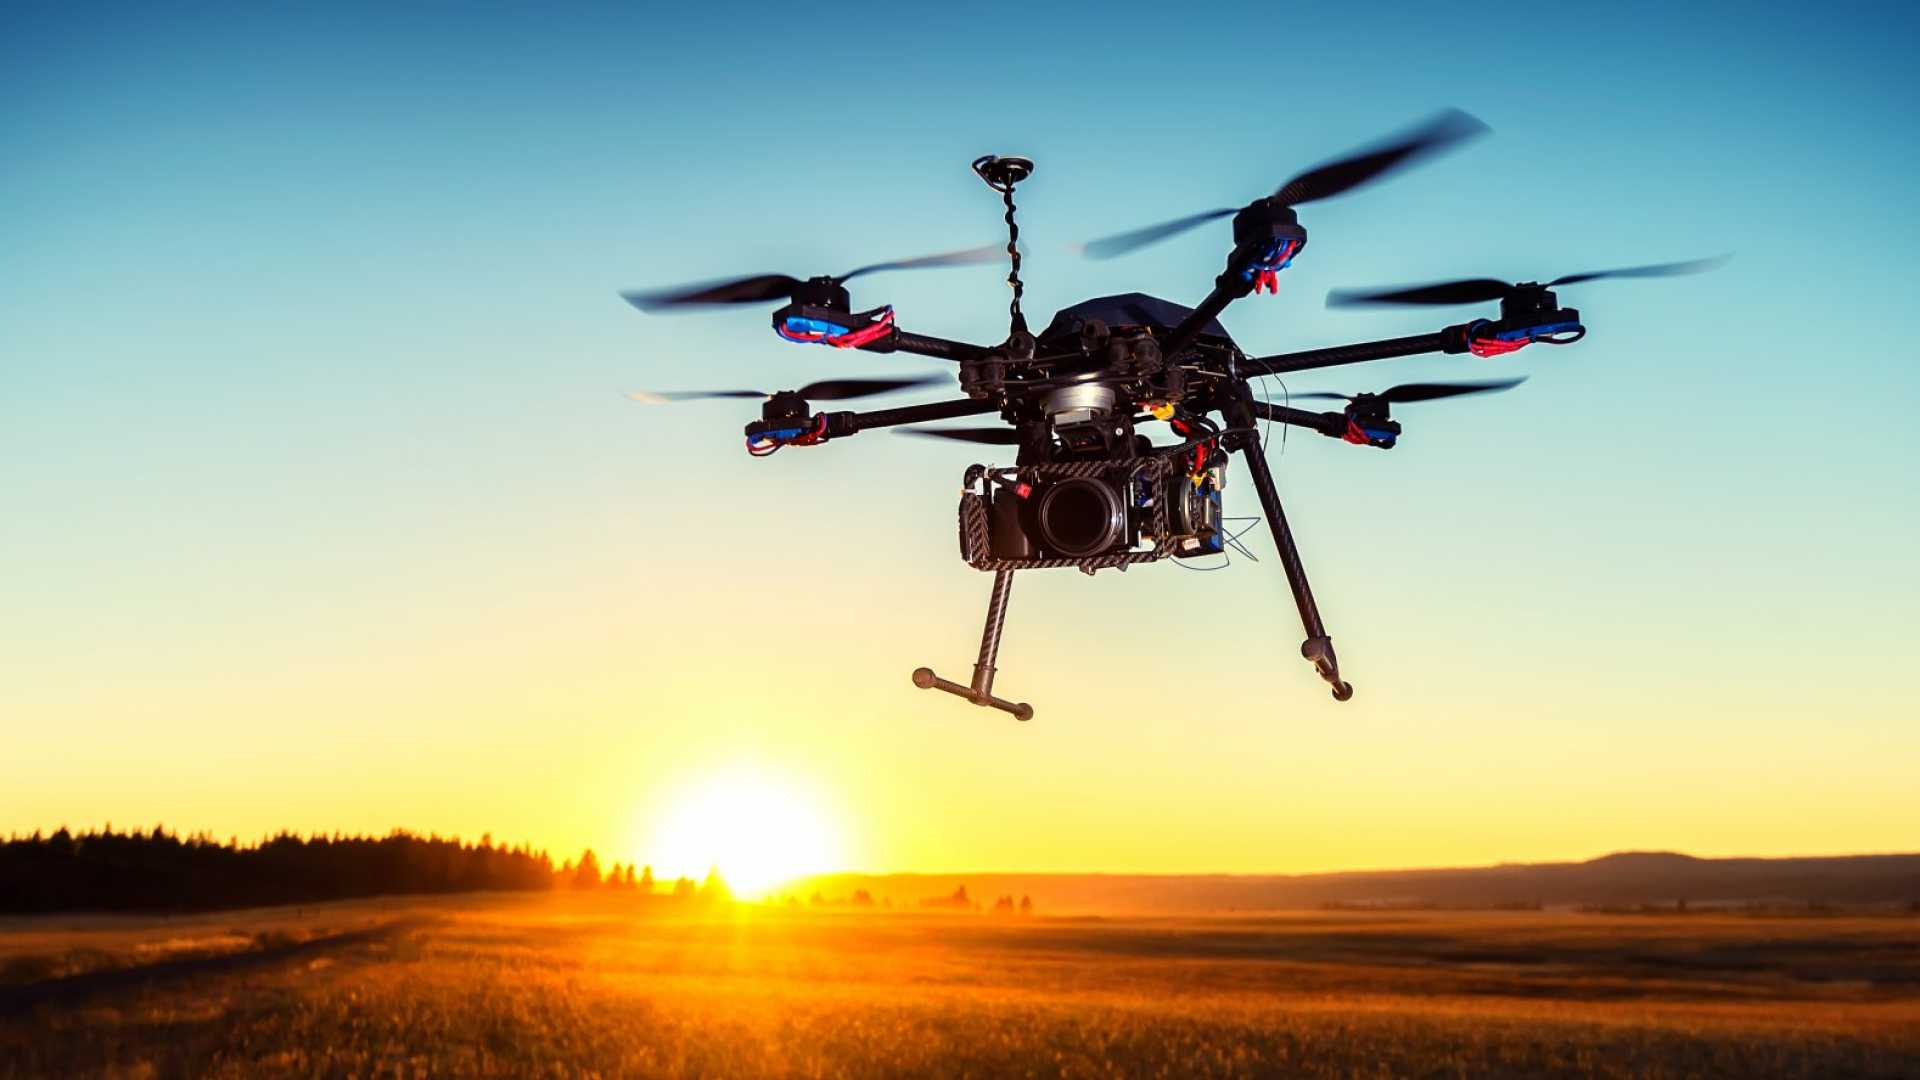 This Drone Technology Might Sound a Little Creepy. But it Could Actually Save Lives